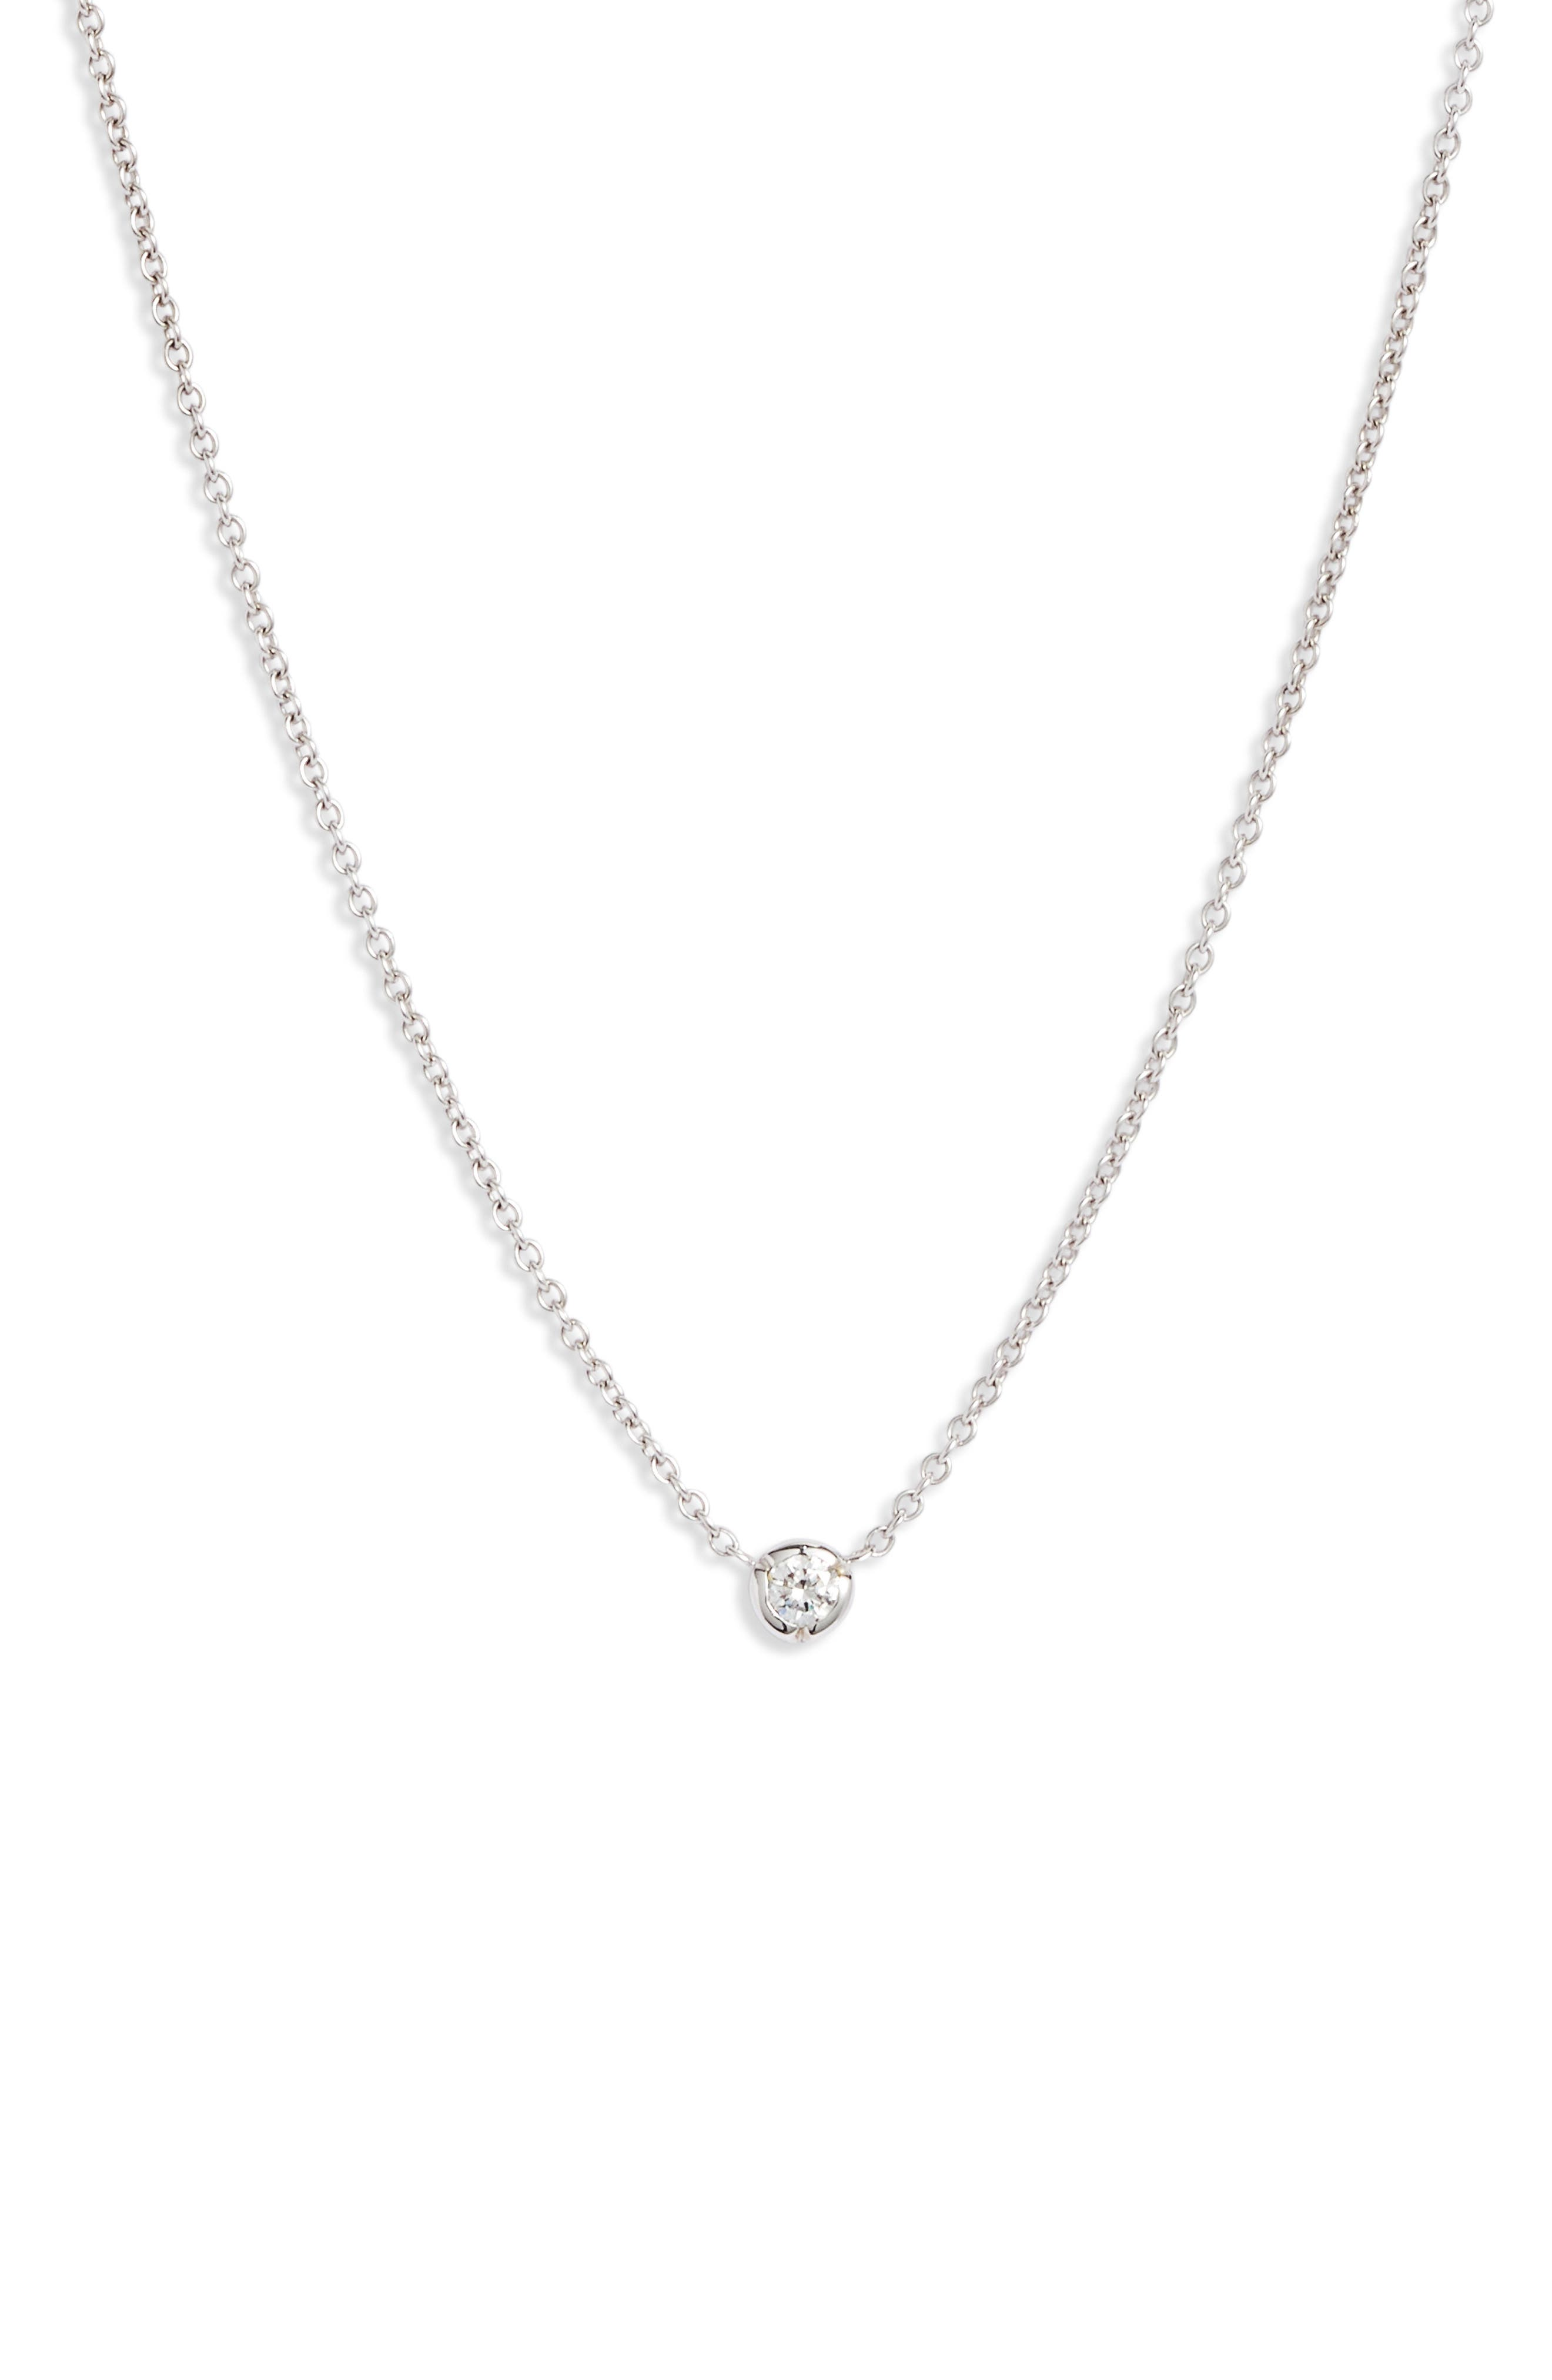 A notched bezel setting updates this tiny solitaire necklace that retains its timeless appeal with a twinkling round diamond and dainty 18-karat-gold chain. Style Name: Bony Levy Petite Bezel Diamond Solitaire Necklace (Nordstrom Exclusive). Style Number: 5895511. Available in stores.